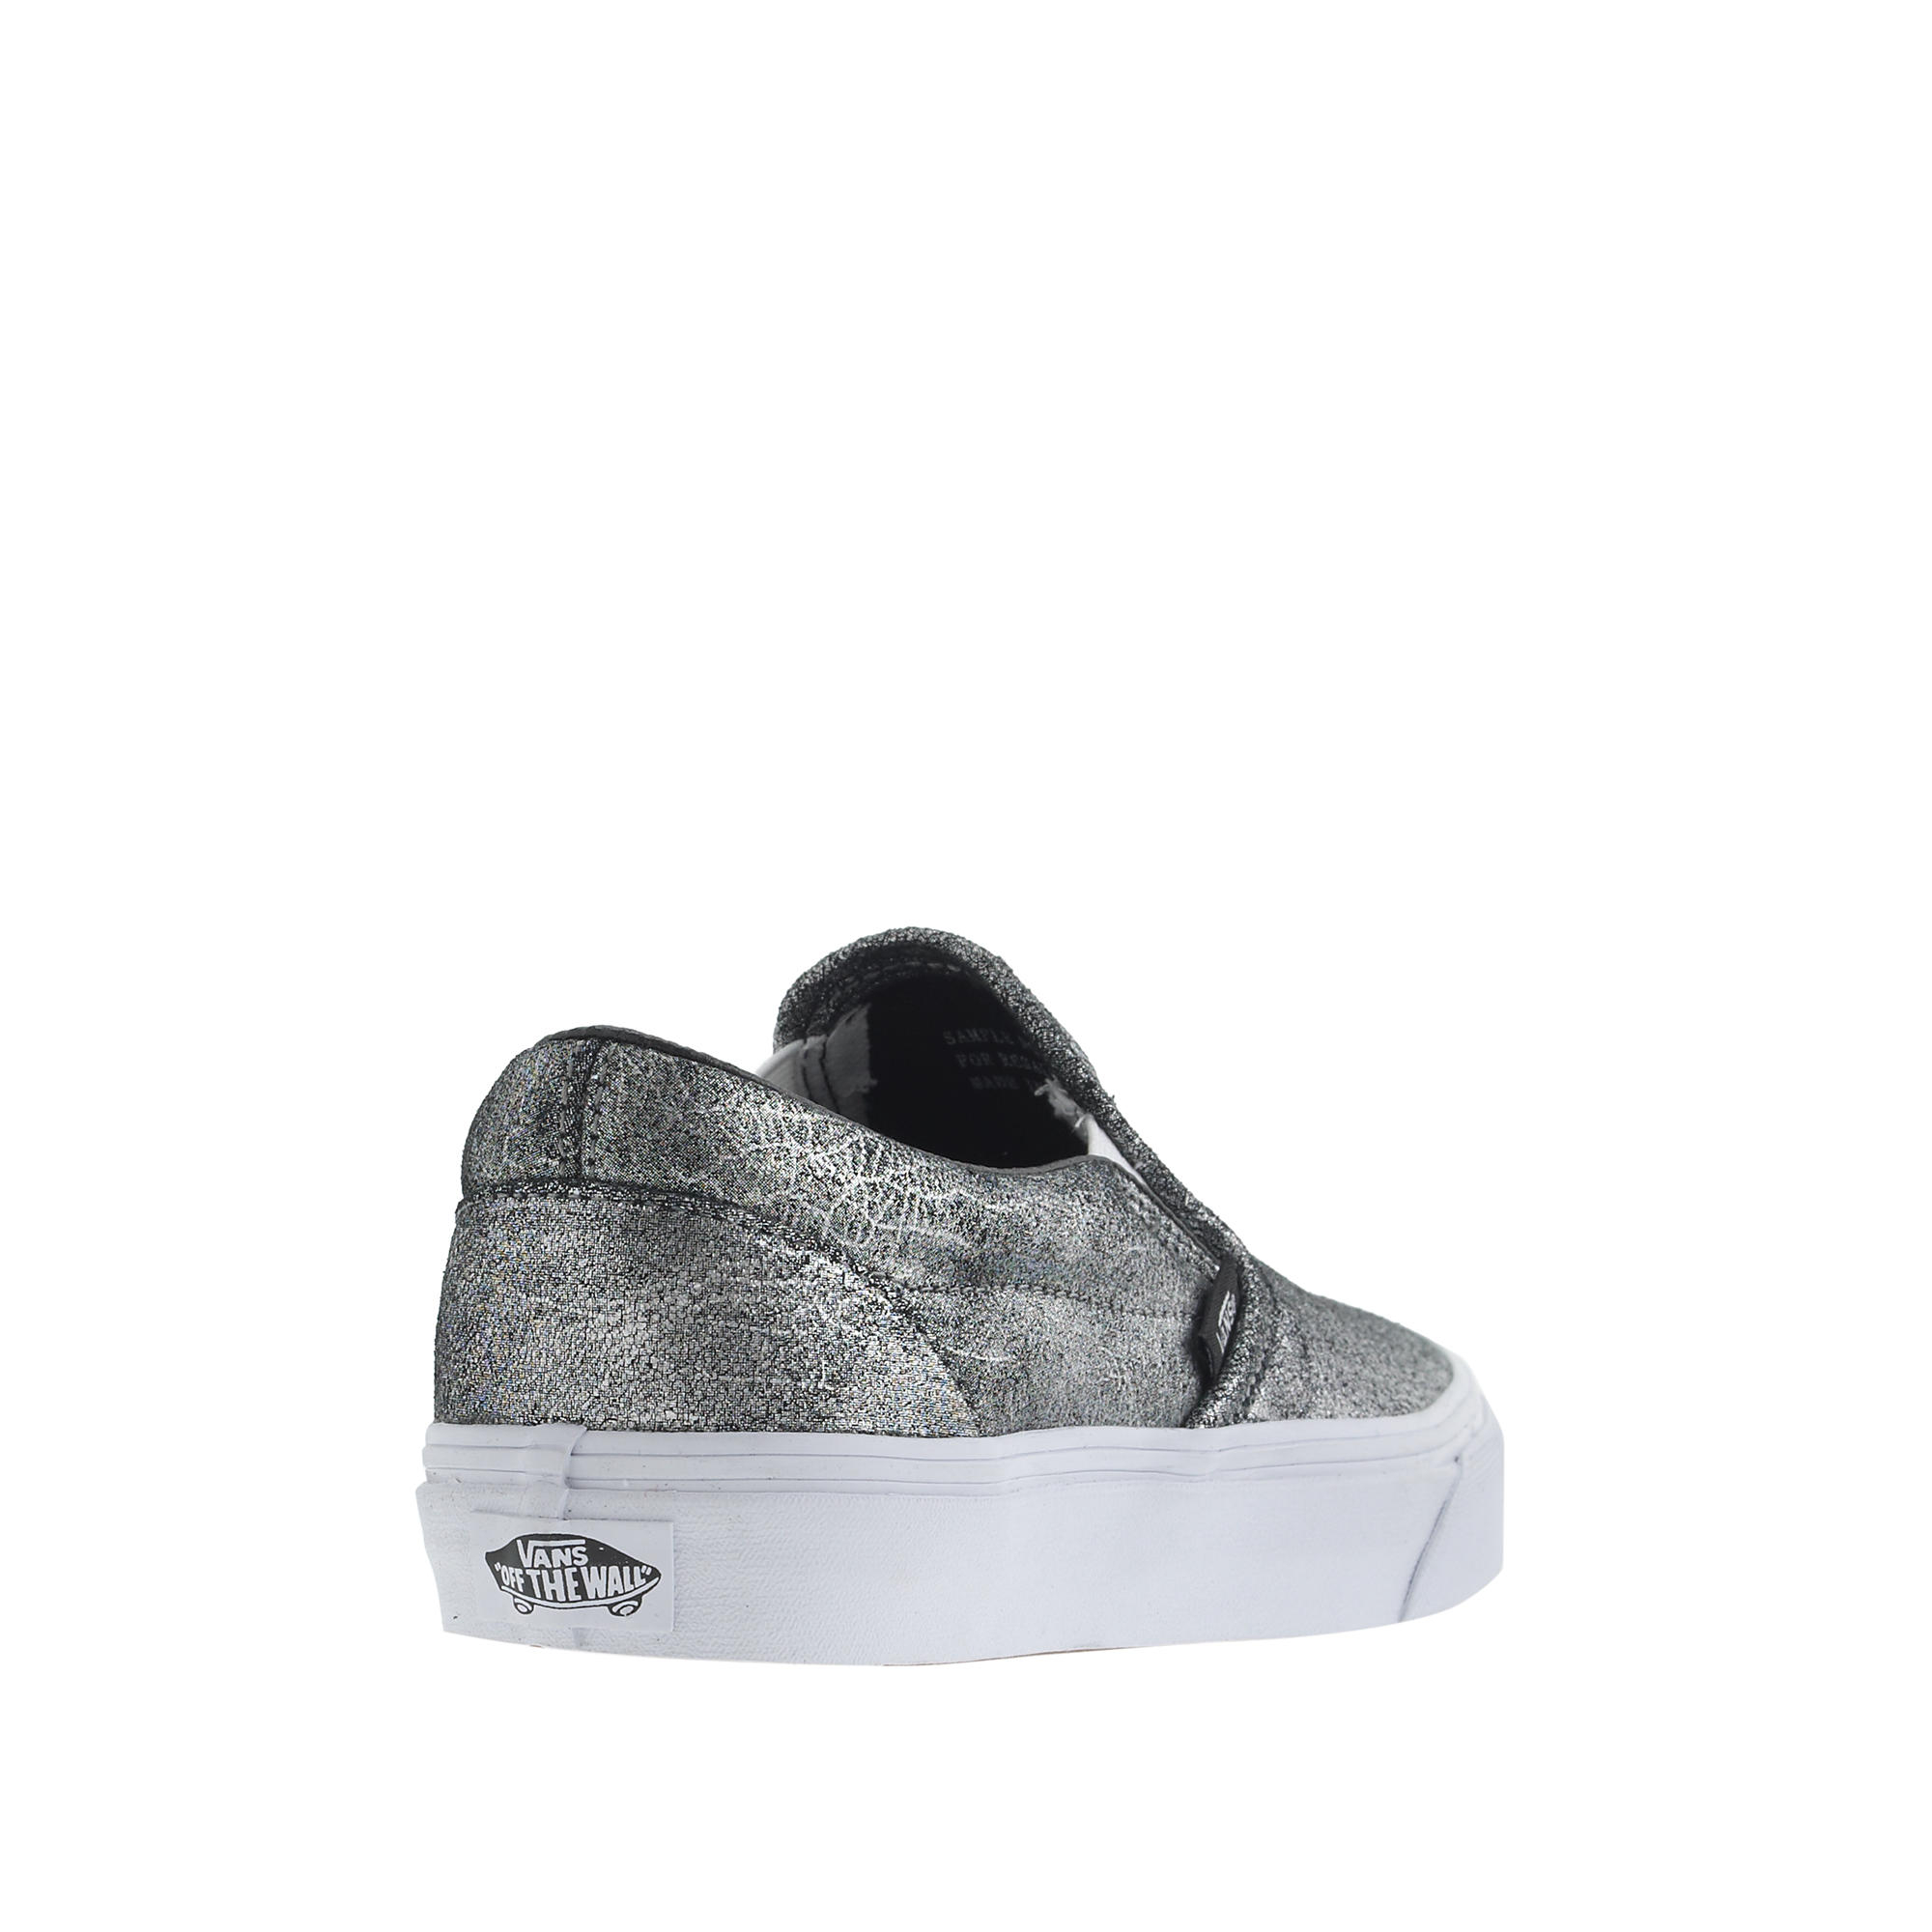 a53fbea571ece5 Lyst - J.Crew Unisex Vans Classic Slip-on Sneakers In Metallic ...